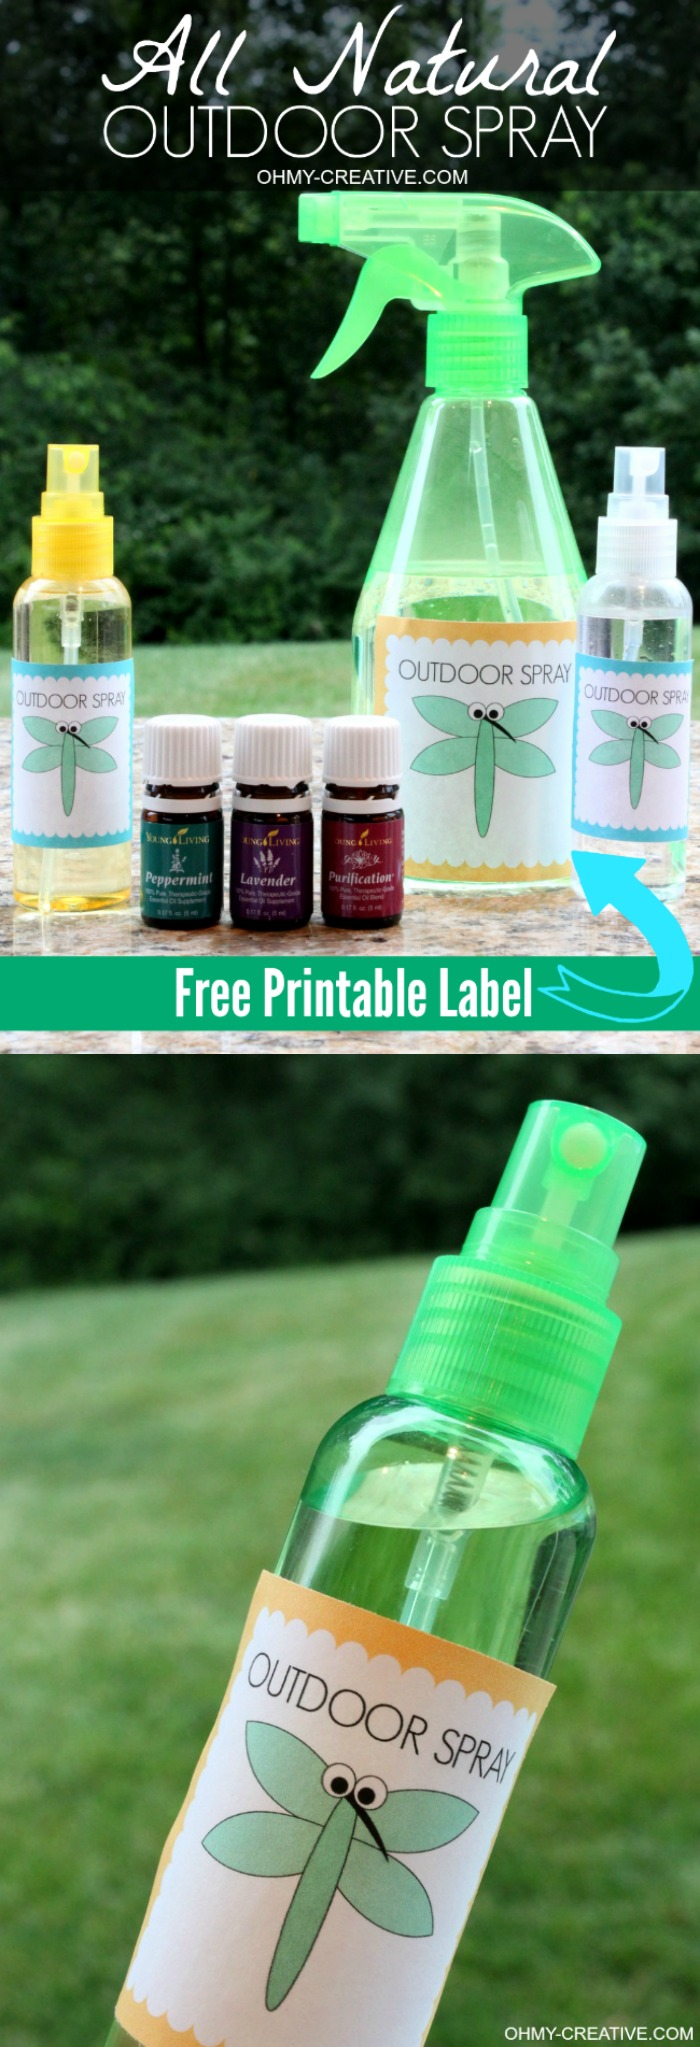 This easy to make Chemical Free Outdoor Spray is perfect when enjoying all outdoor activities and safe to spray all over the kids and family! I LOVE that it is all natural! Plus a Free Printable Label  |   OHMY-CREATIVE.COM